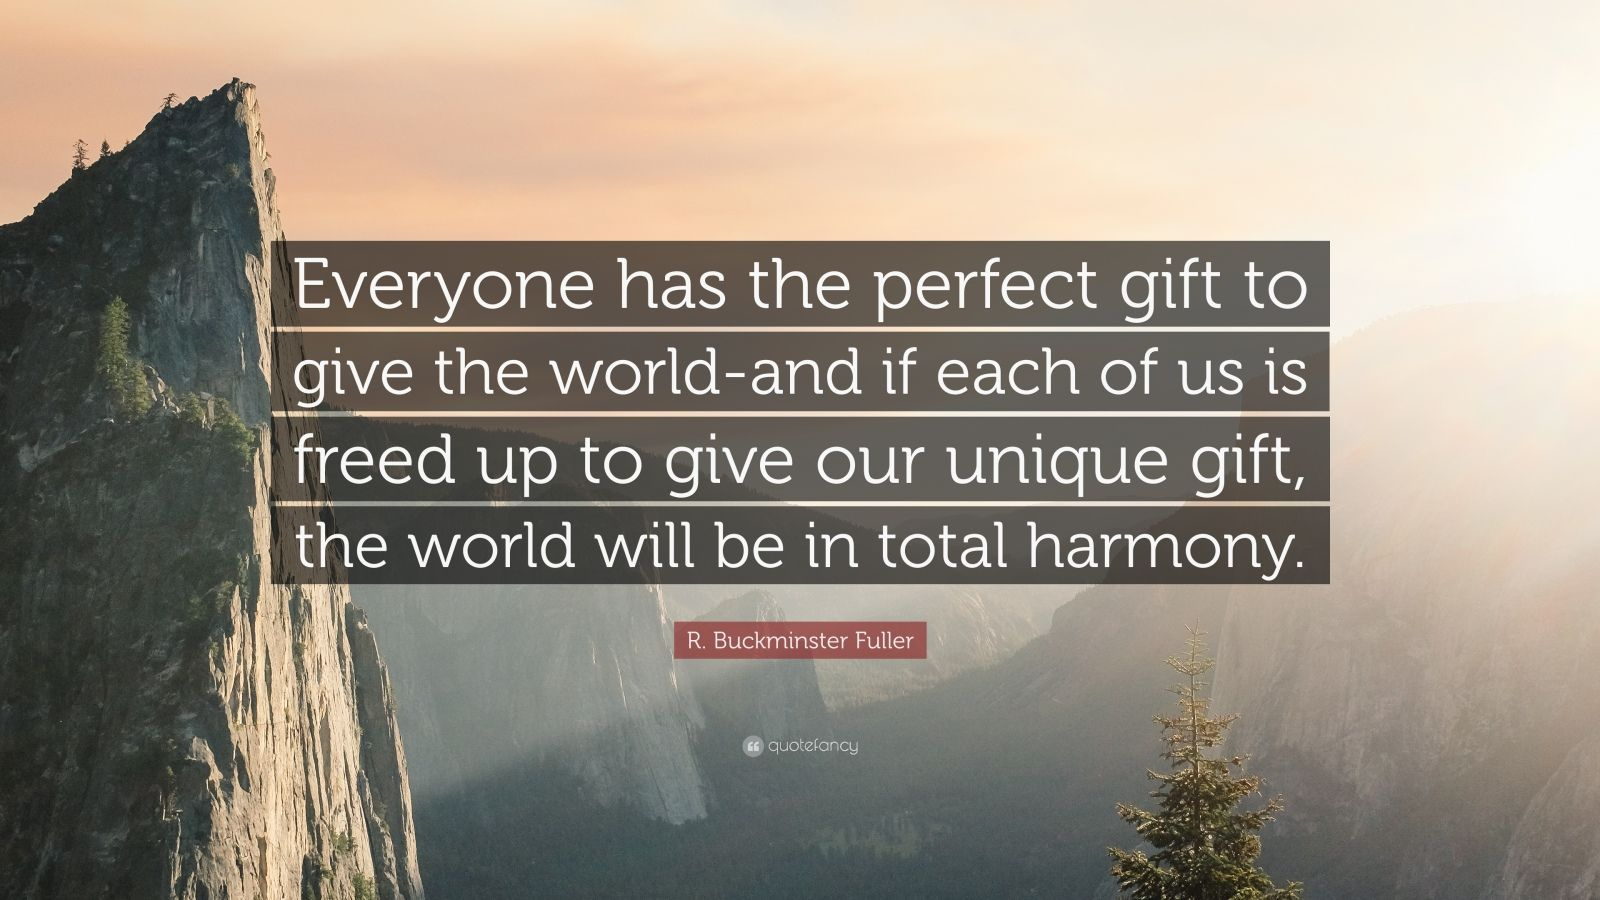 """R. Buckminster Fuller Quote: """"Everyone has the perfect gift to give the world-and if each of us is freed up to give our unique gift, the world will be in total harmony."""""""